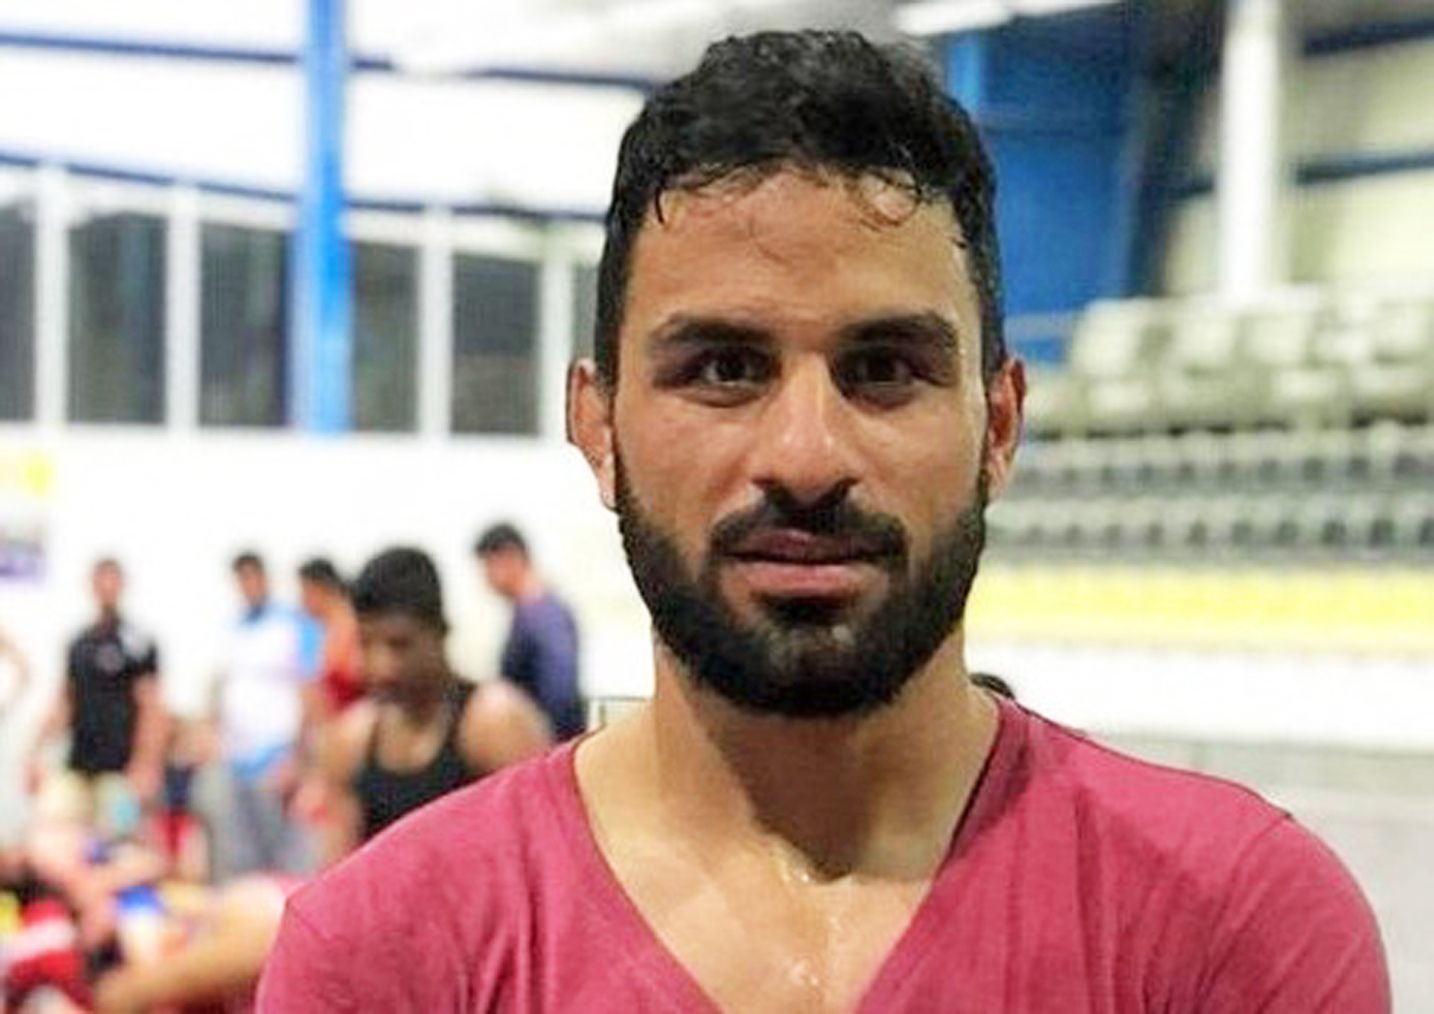 Iran executes champion wrestler Navid Afkari, Tehran, Iran Islamic Republic Of - 12 Sep 2020